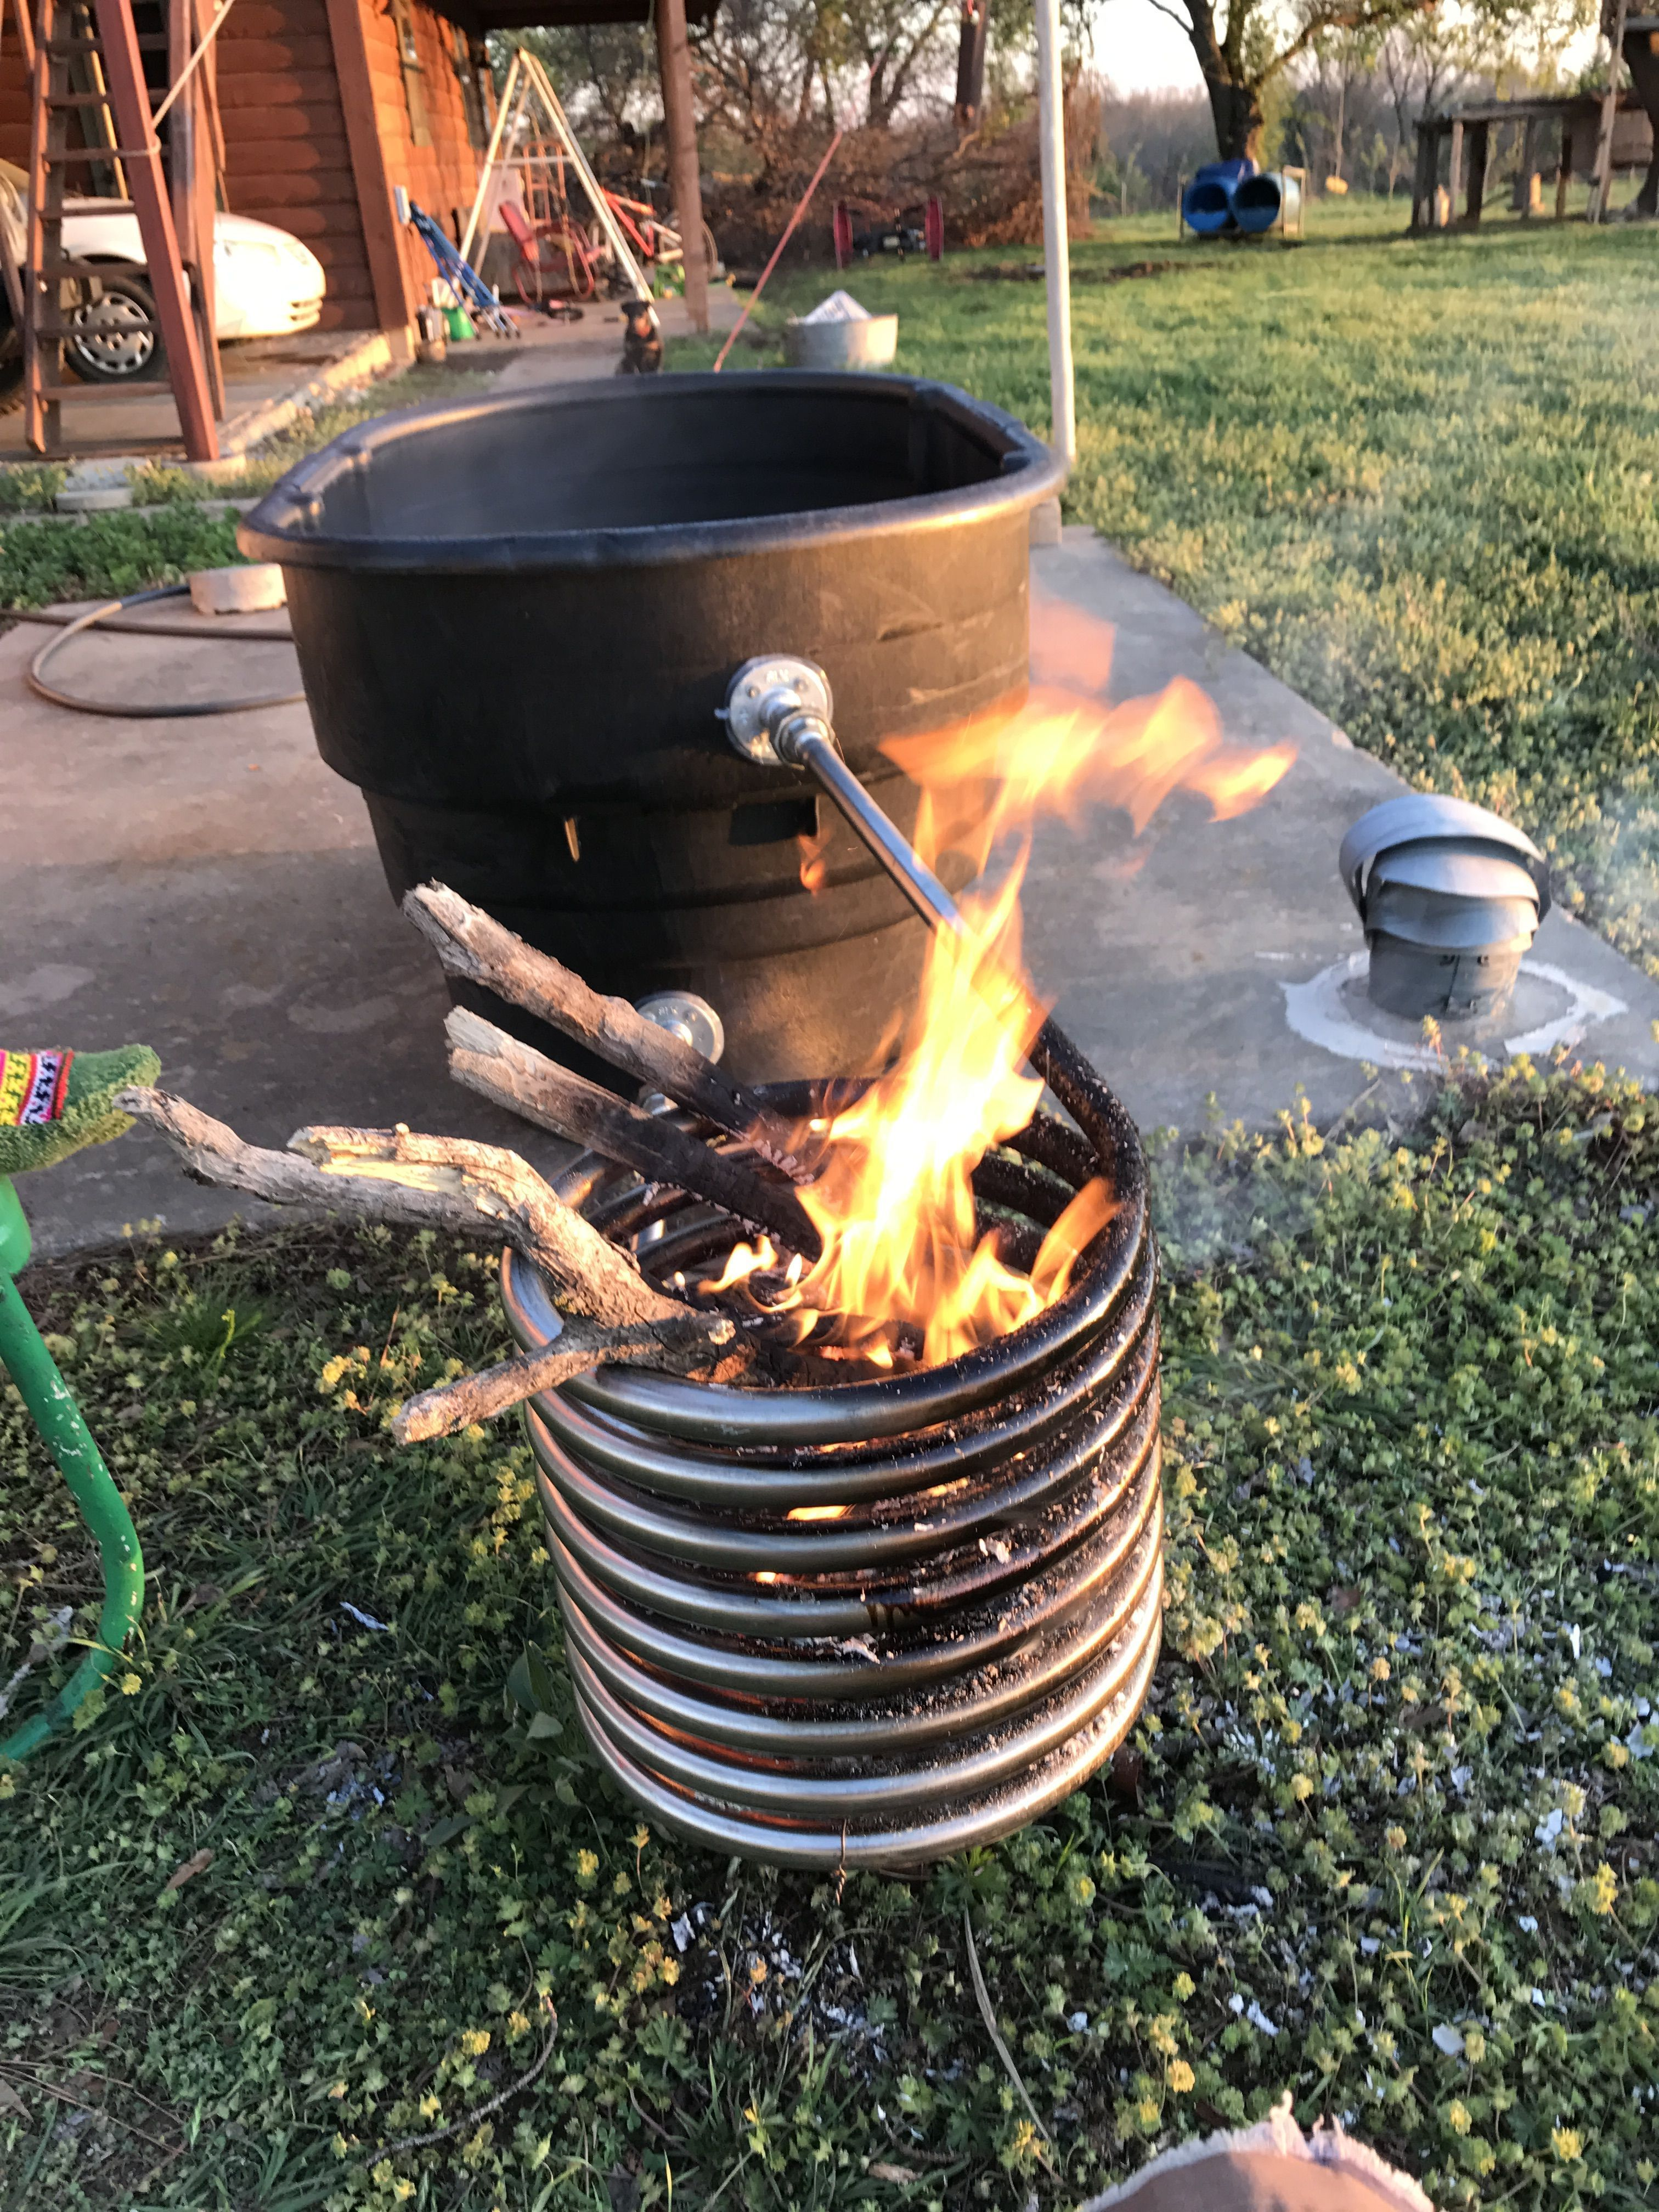 Poolheizung Mit Feuer Build This Wood Fired Hot Tub Today Diy Calentador Para